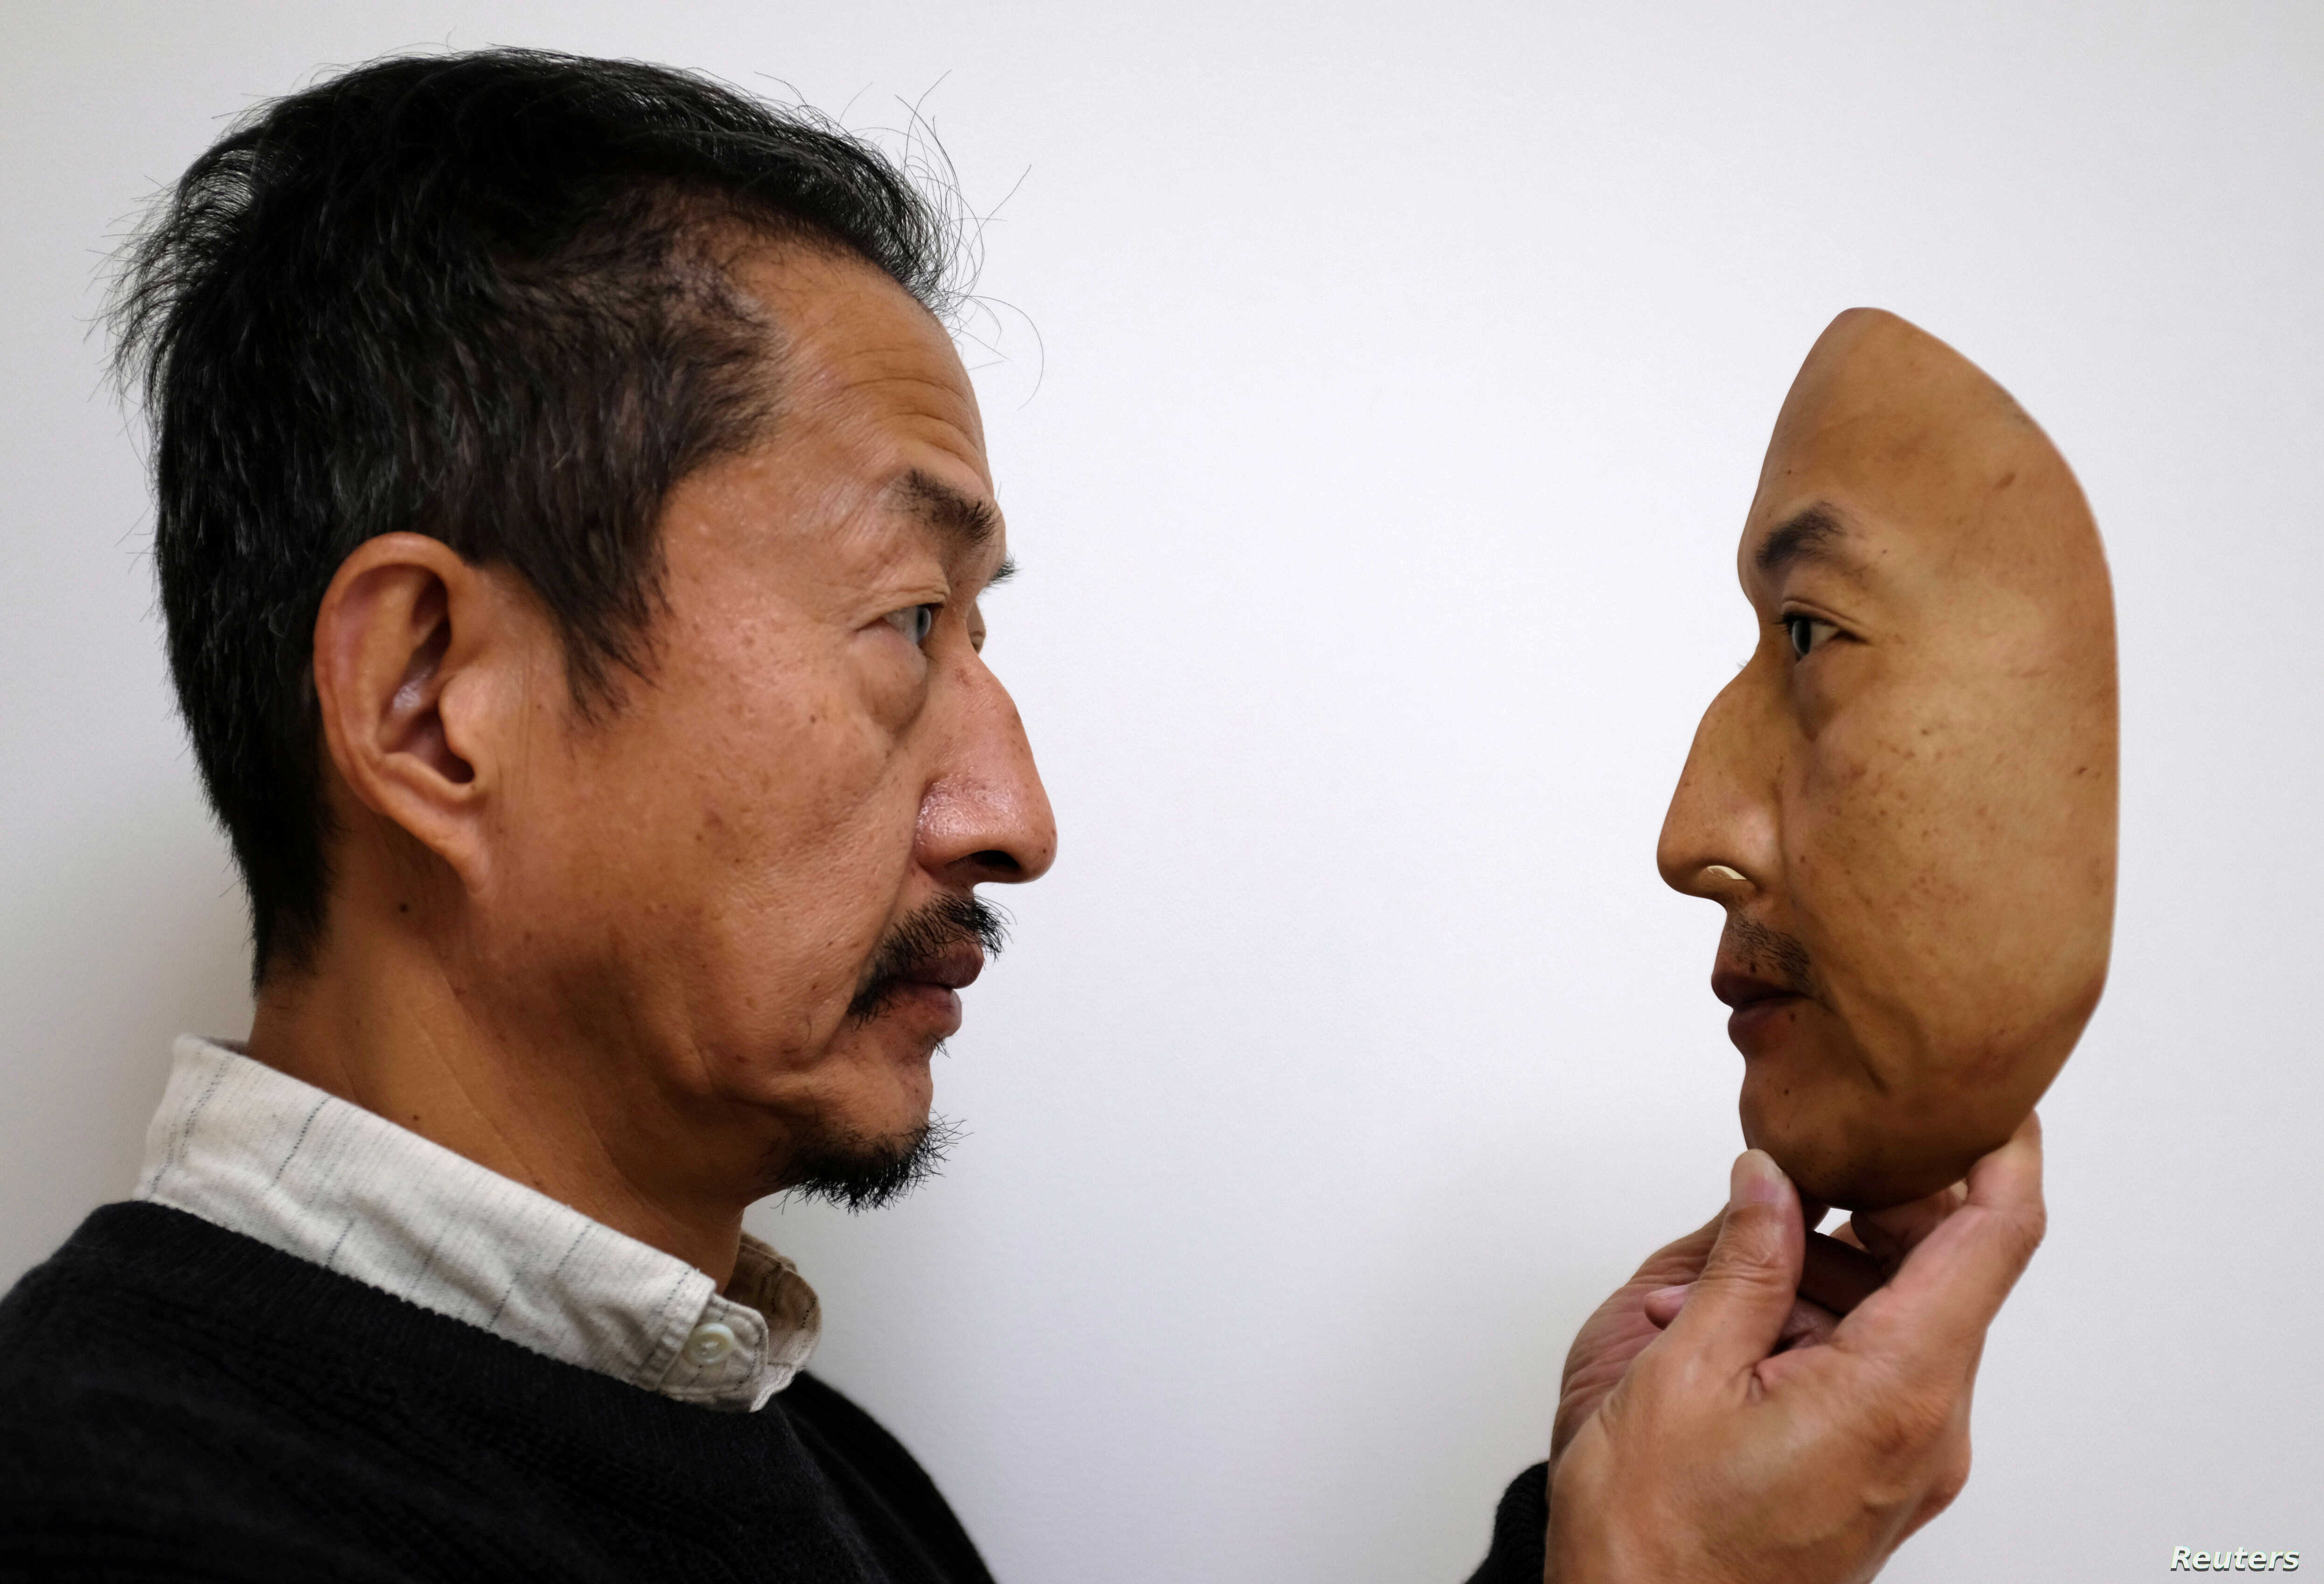 Realistic Masks Made in Japan Find Demand from Tech, Car